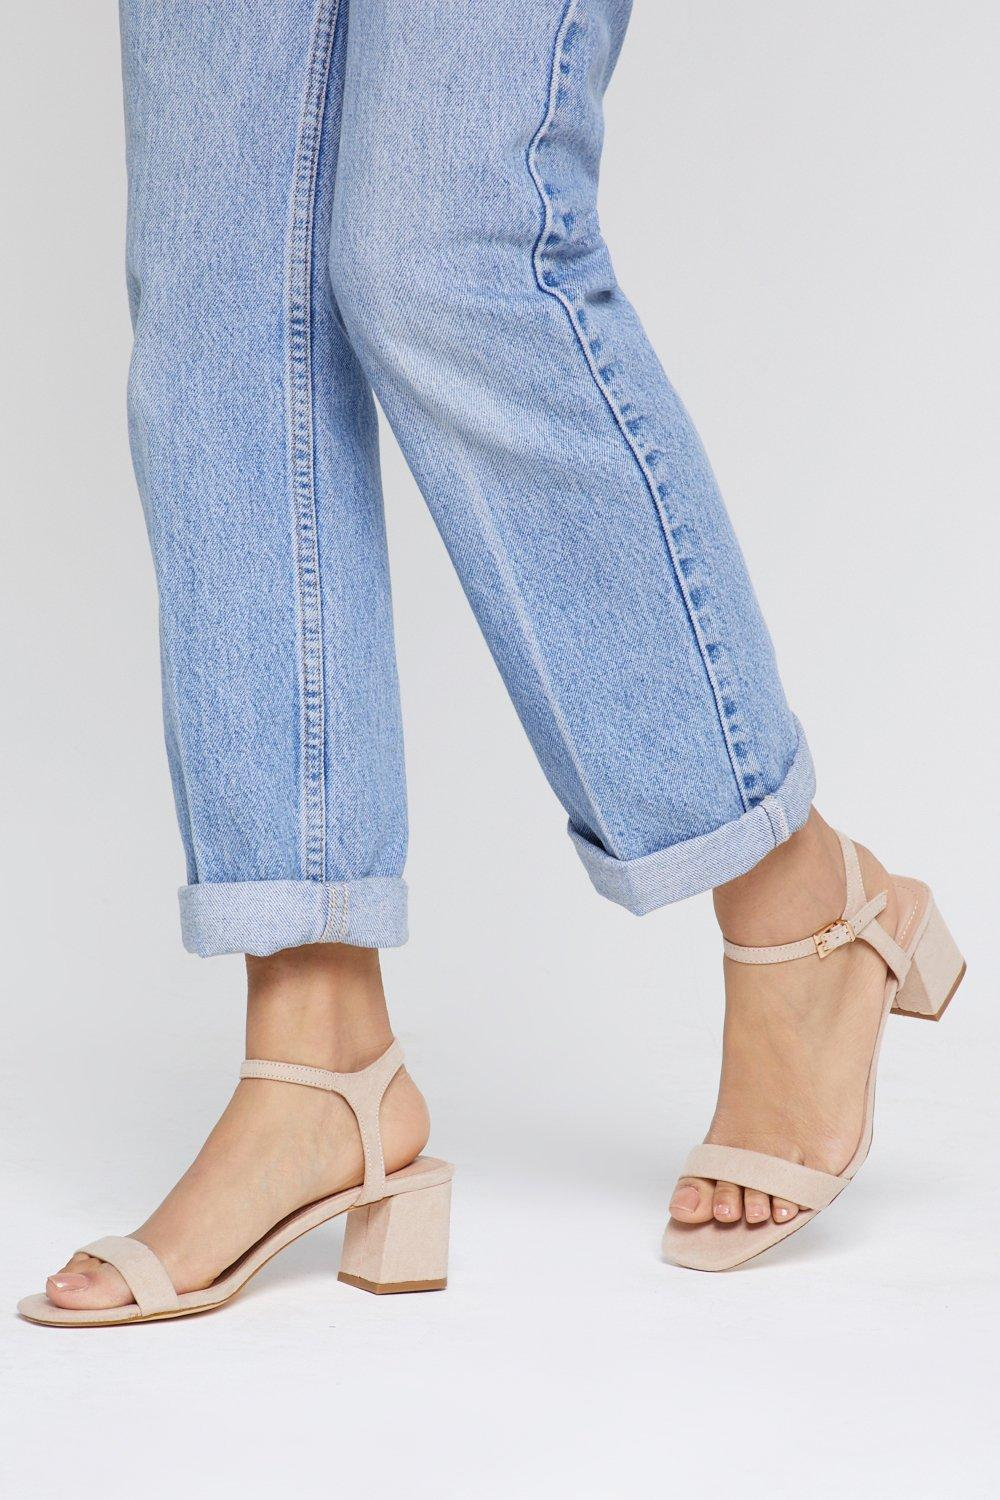 A Low It Flare Block Snadals by Nasty Gal